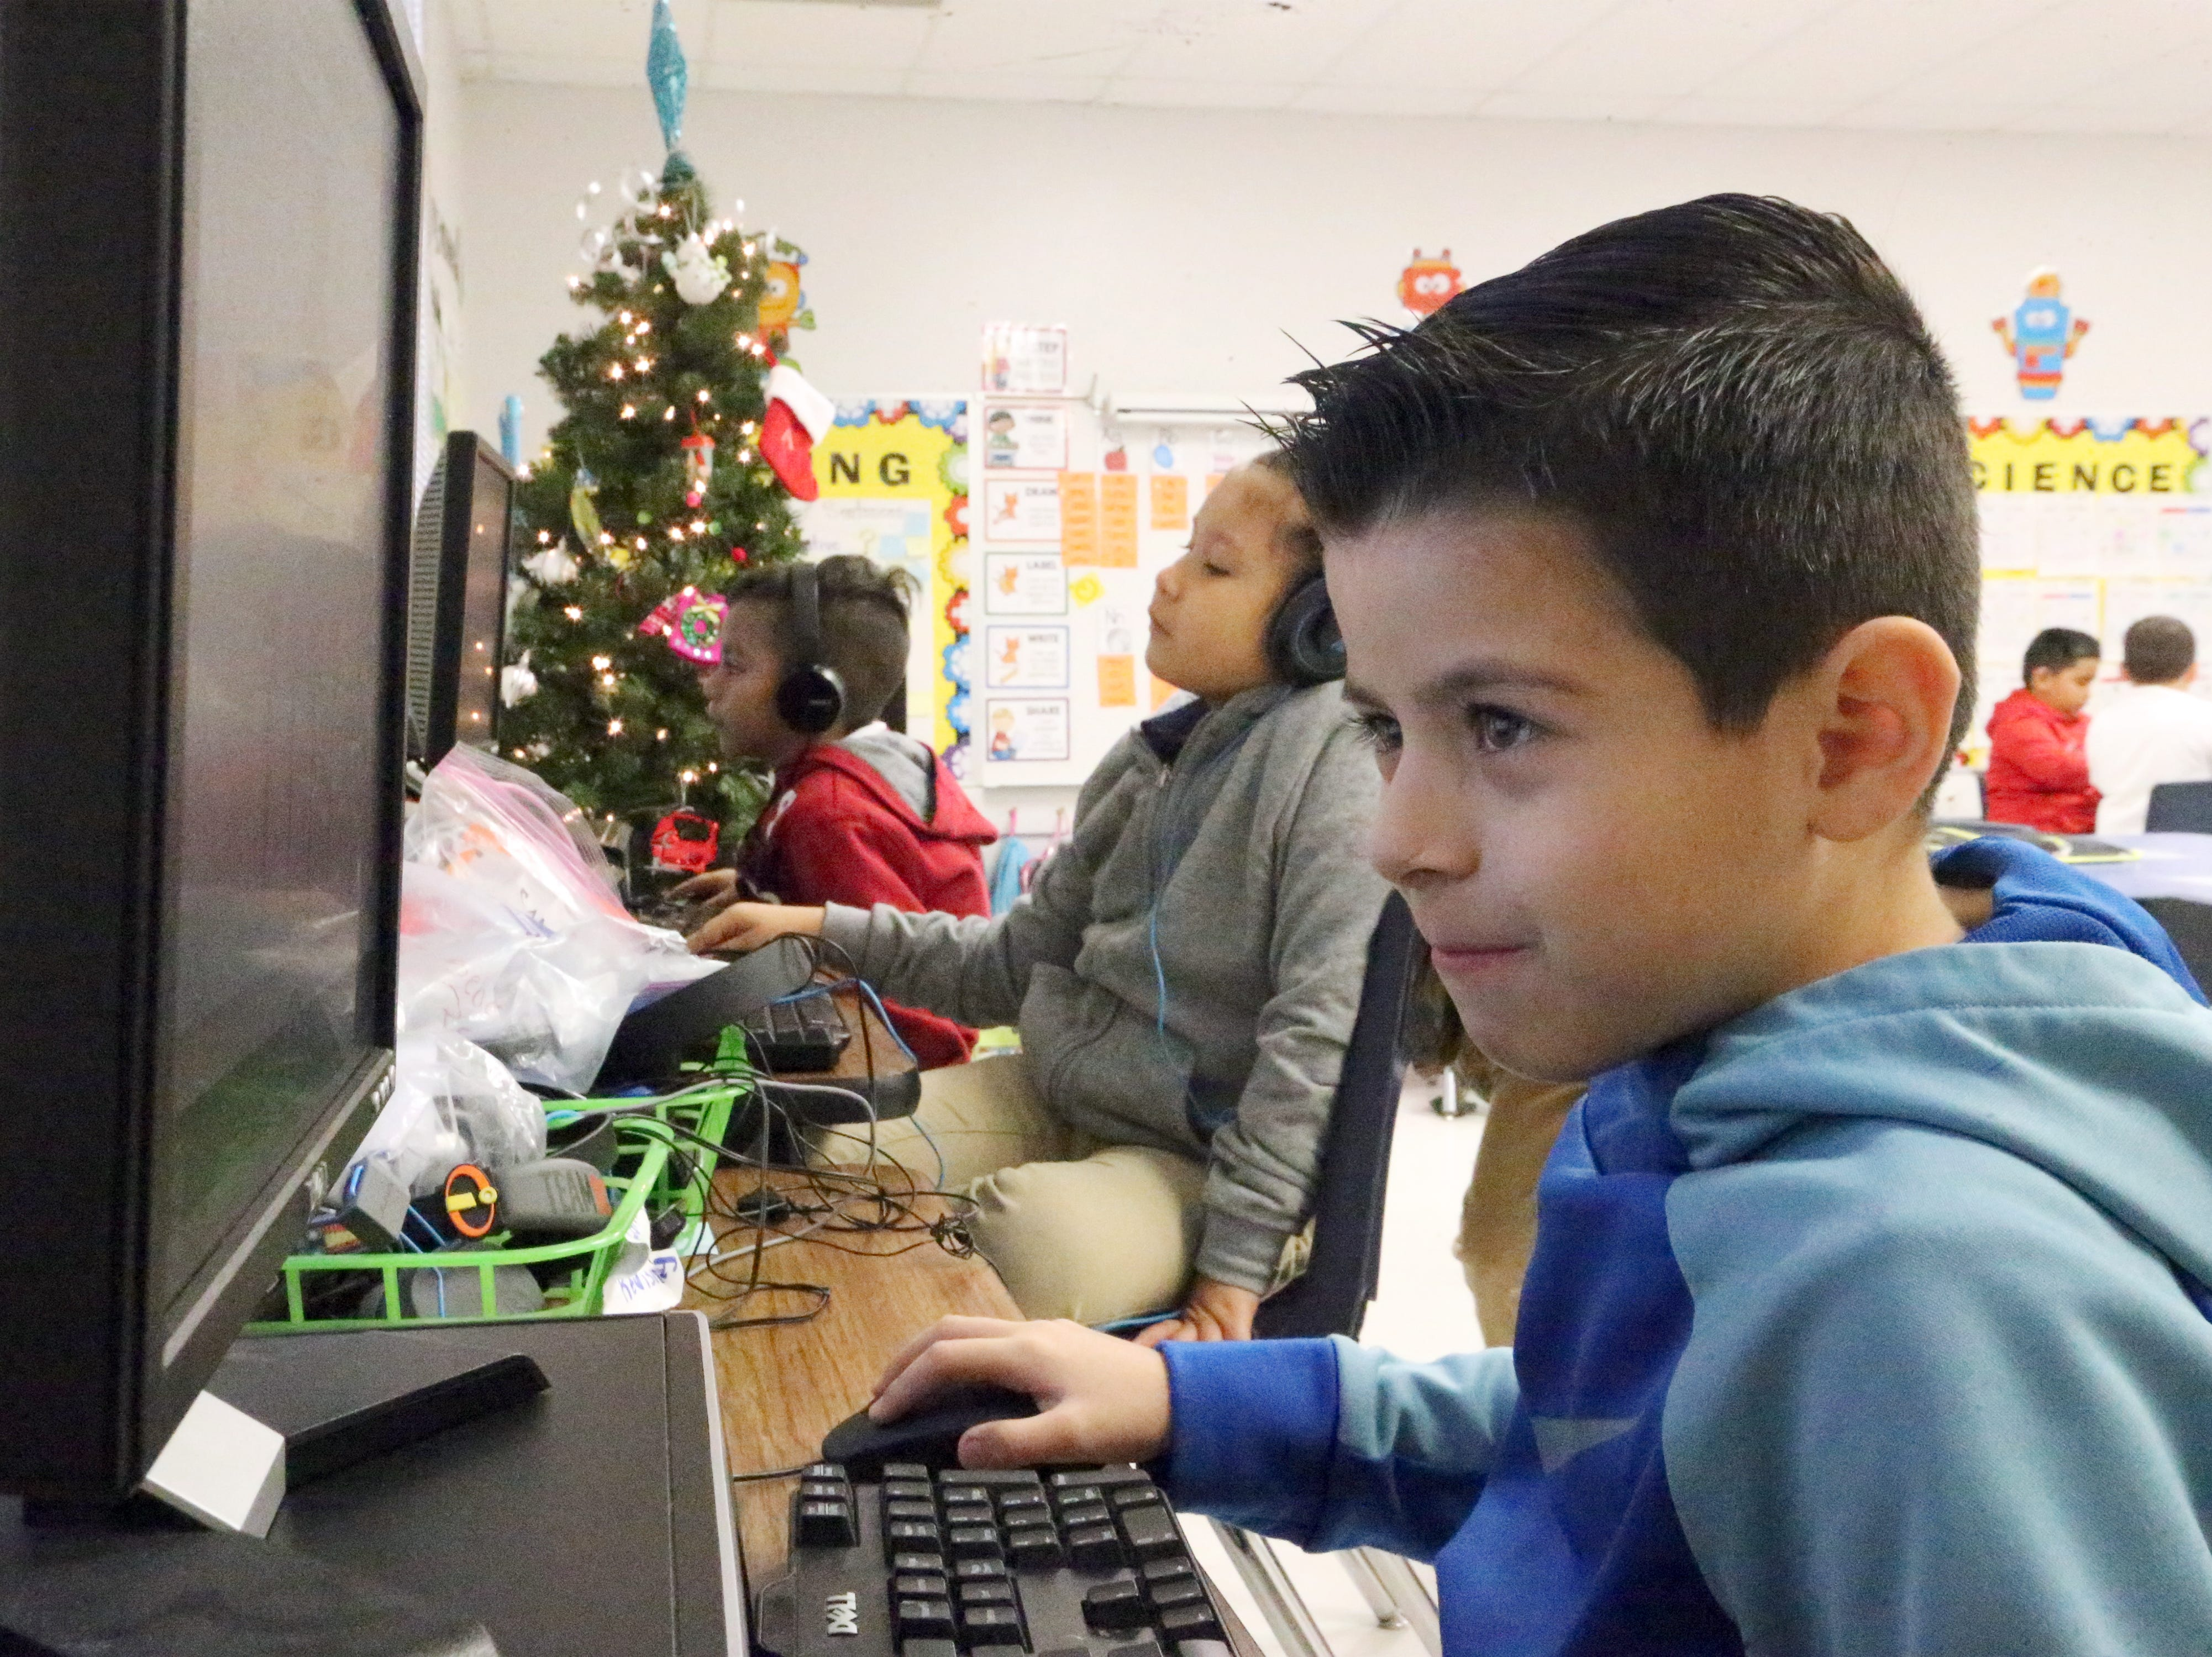 Diego Rodriguez works on a computer program in the classroom of first grade teacher Zelene Blancas at Dr. Sue Shook Elementary School in far East El Paso.